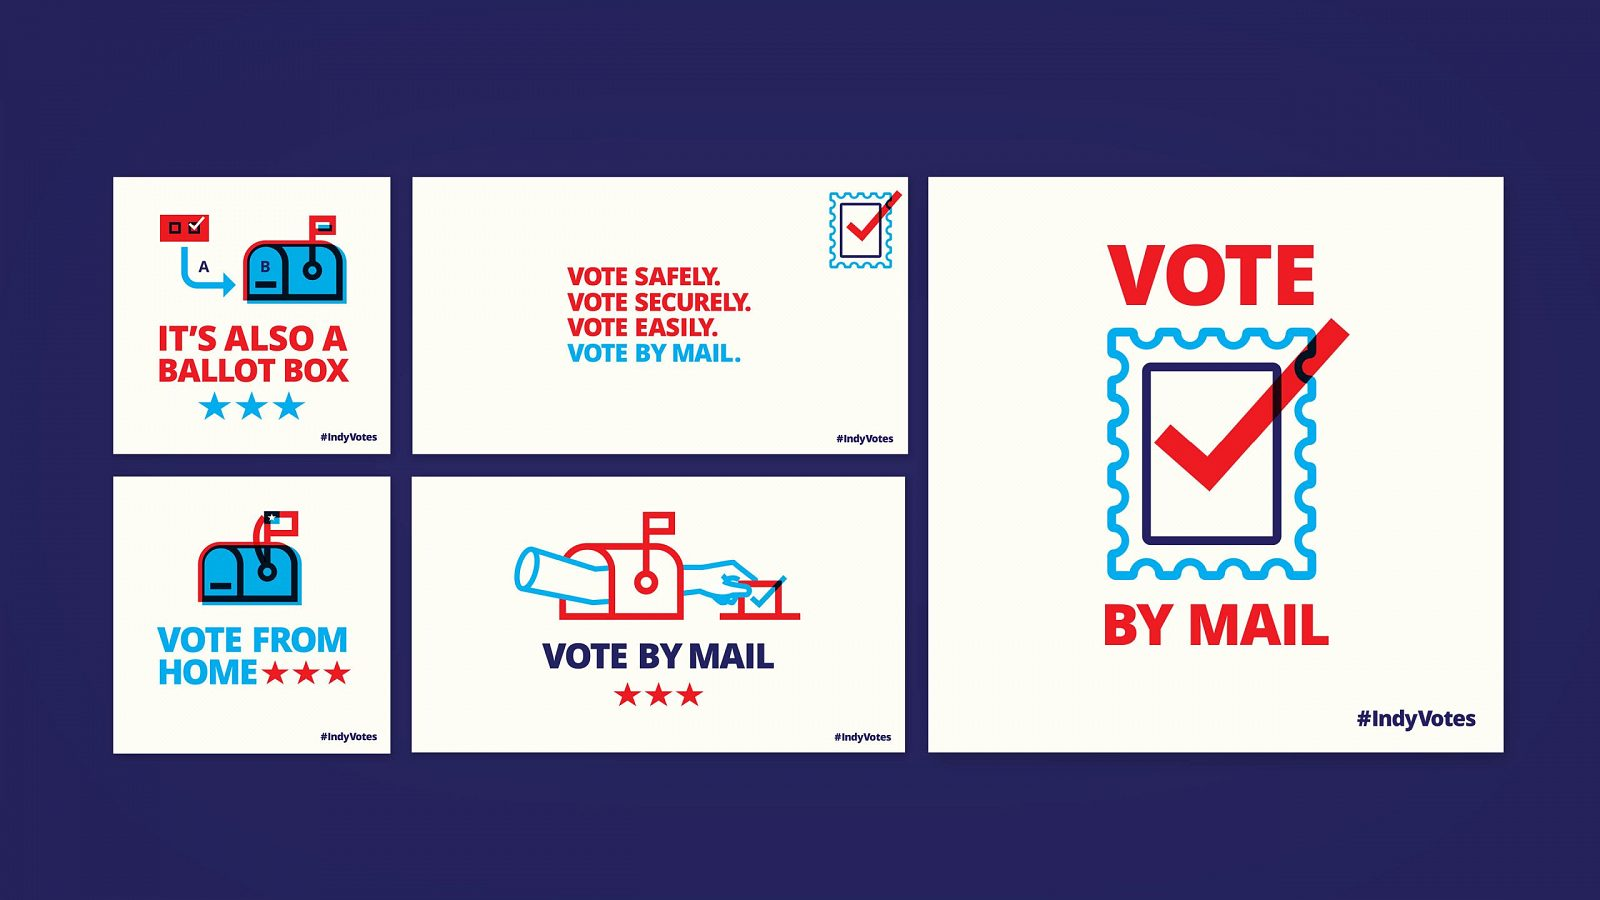 Marion County Election Board Vote By Mail Illustrations